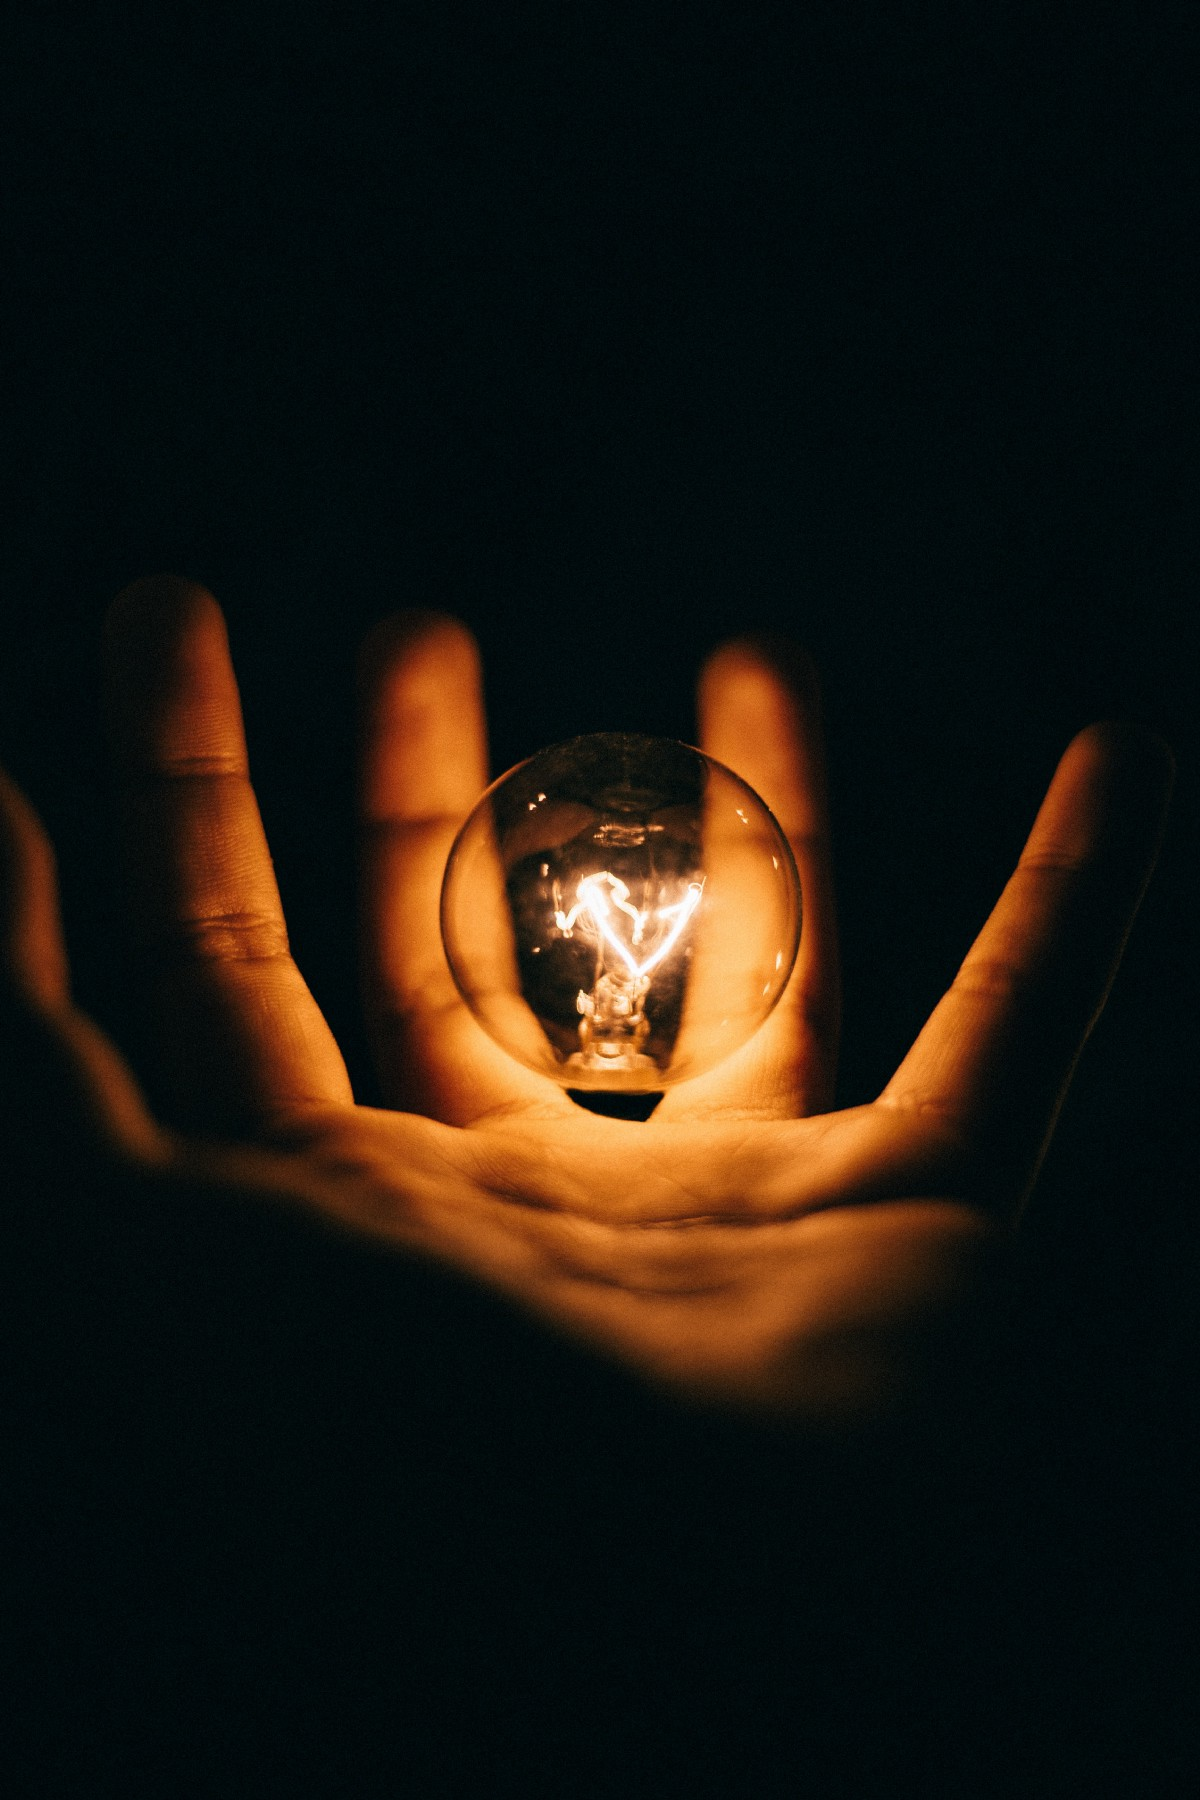 A lightbulb floating over the palm of a hand as it illuminates it.